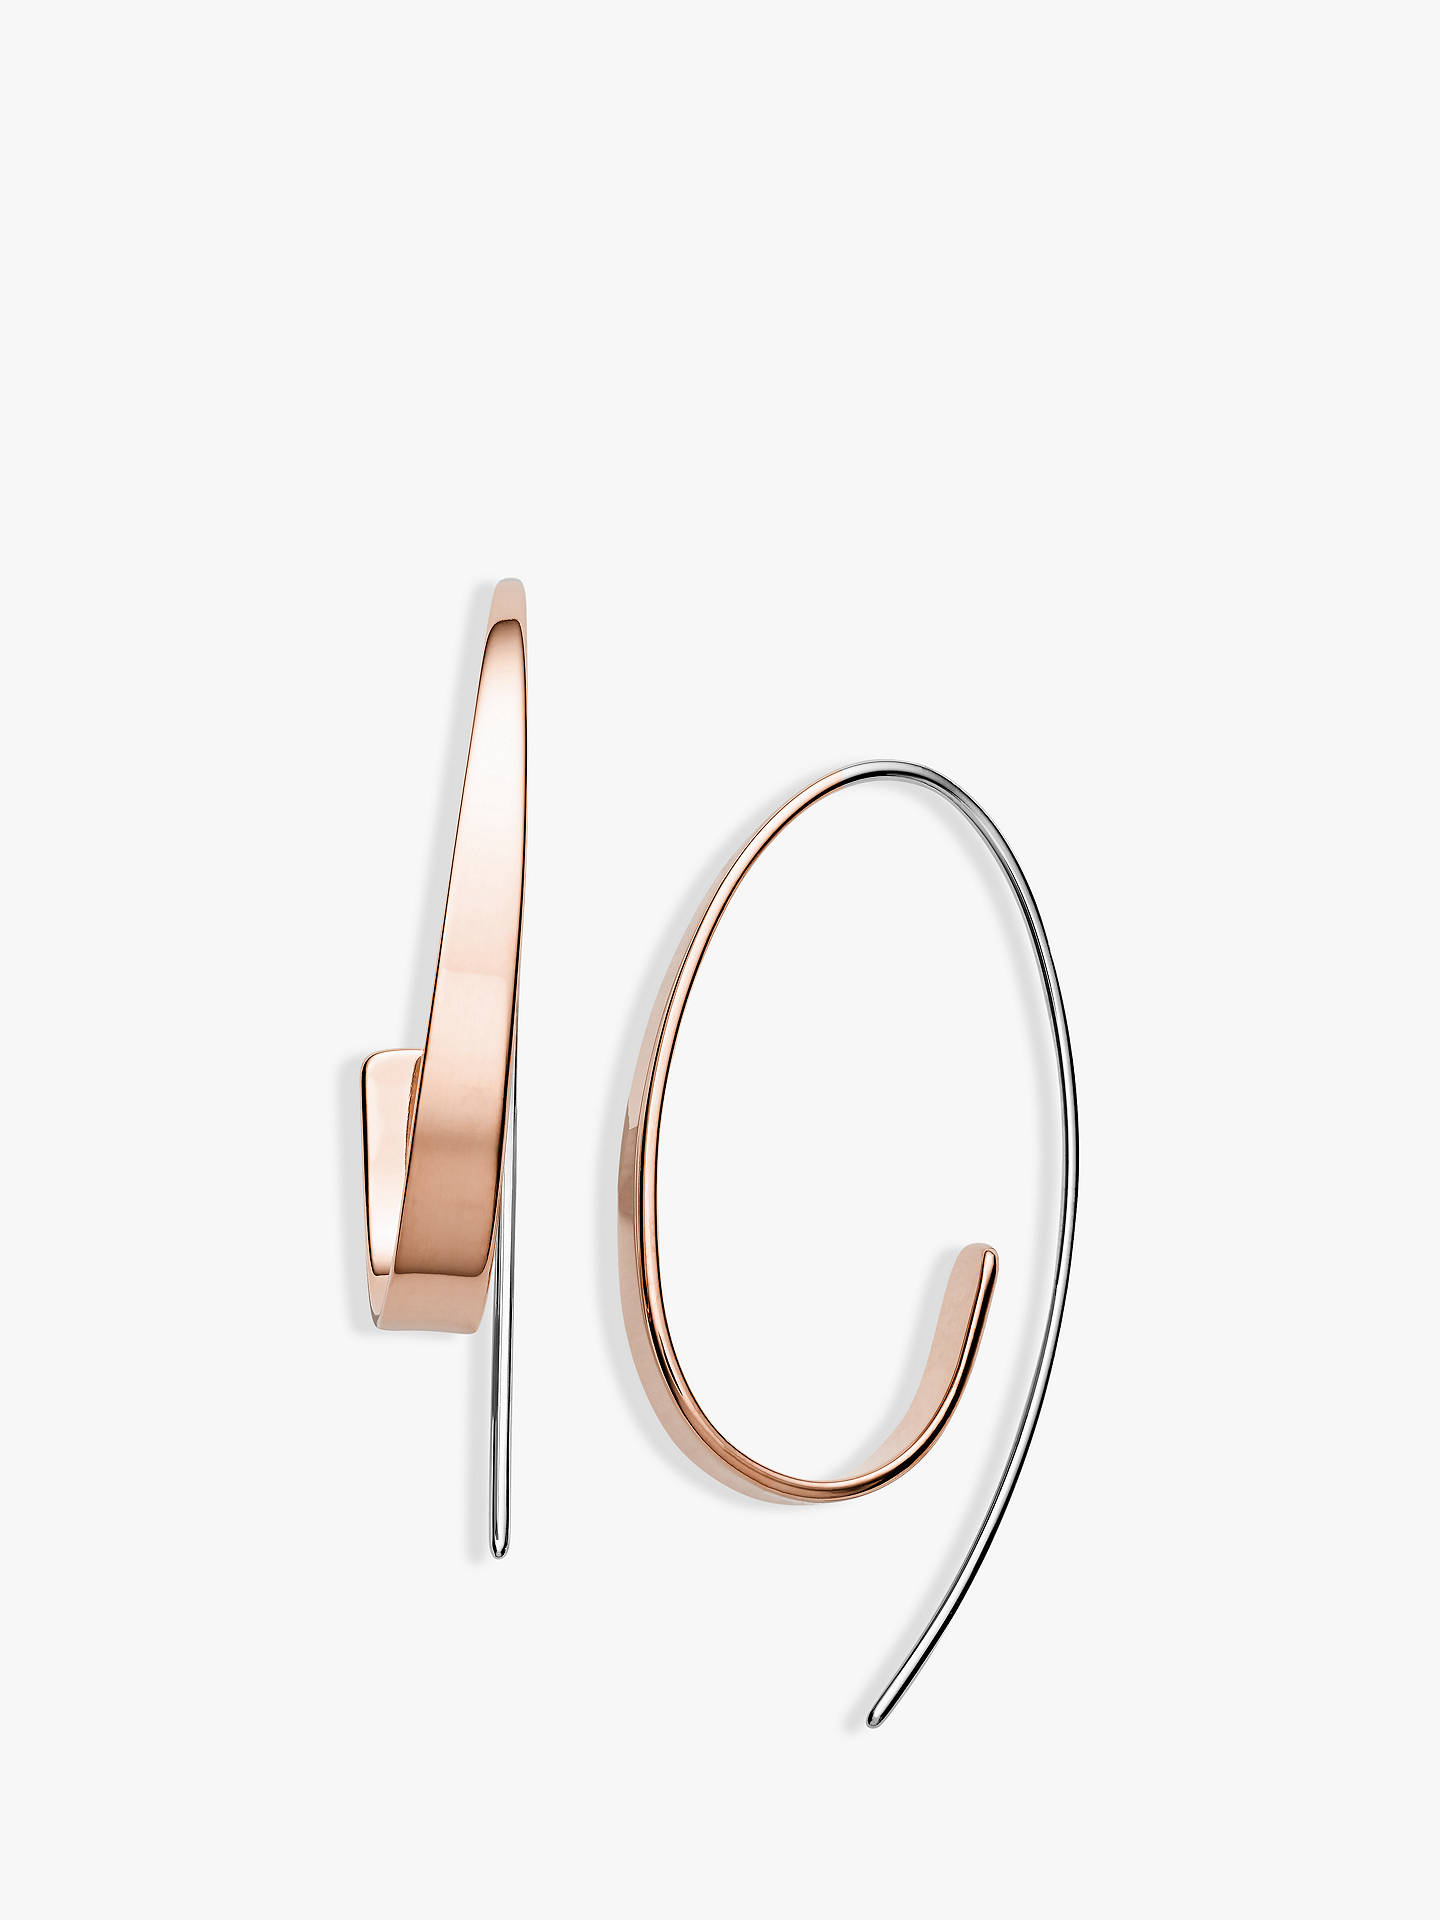 Buy Skagen Swirl Drop Earrings, Rose Gold/Silver SKJ1213998 Online at johnlewis.com